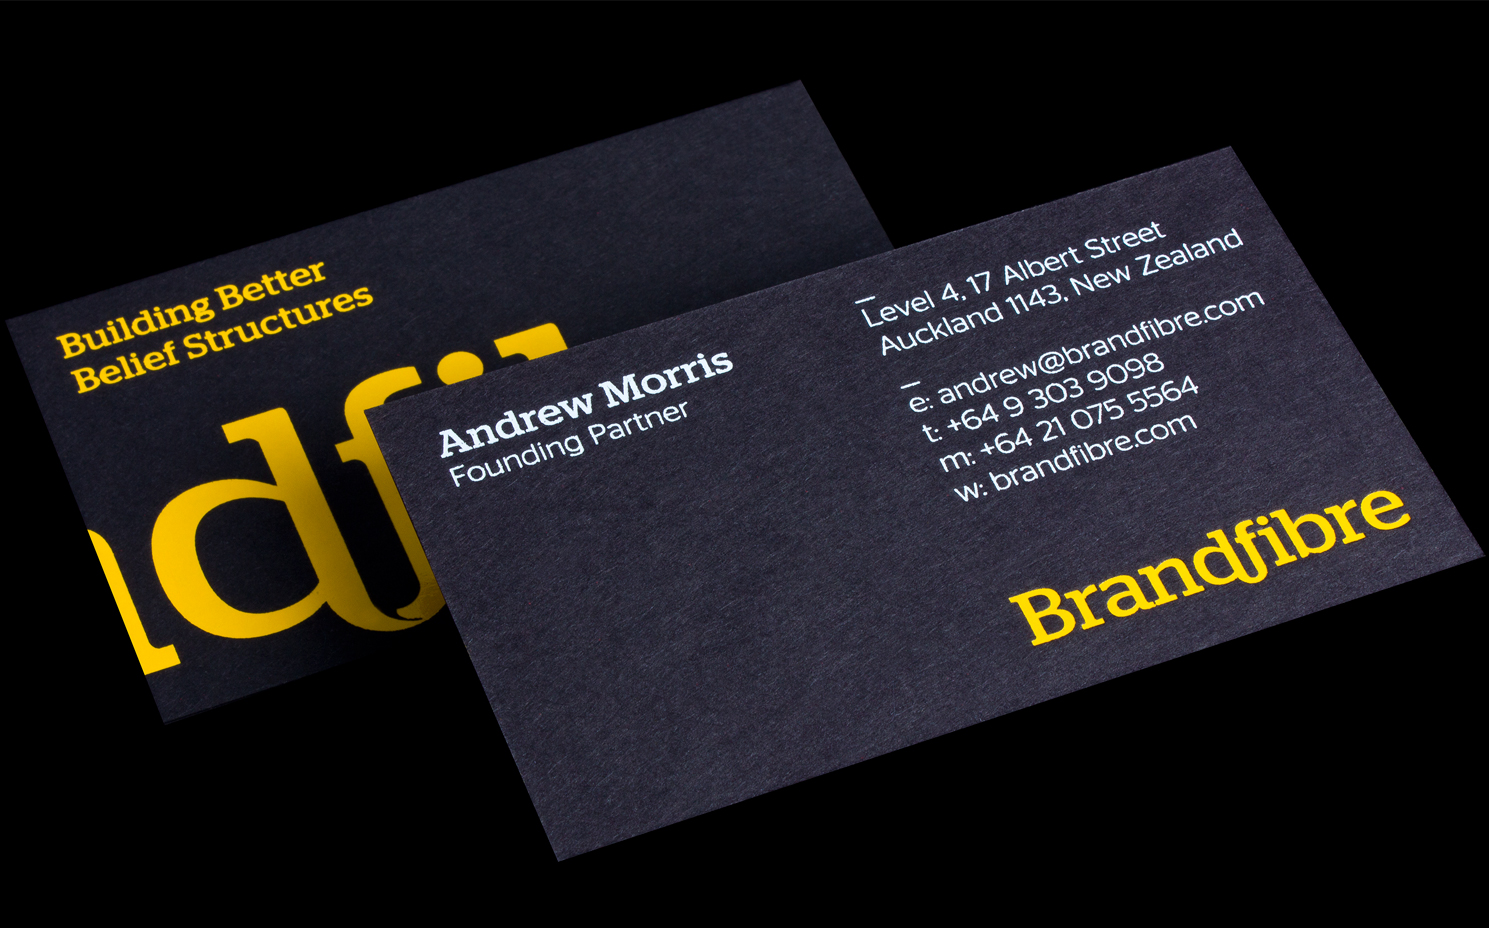 Logick print brand fibre business cards notturno black stock reheart Images